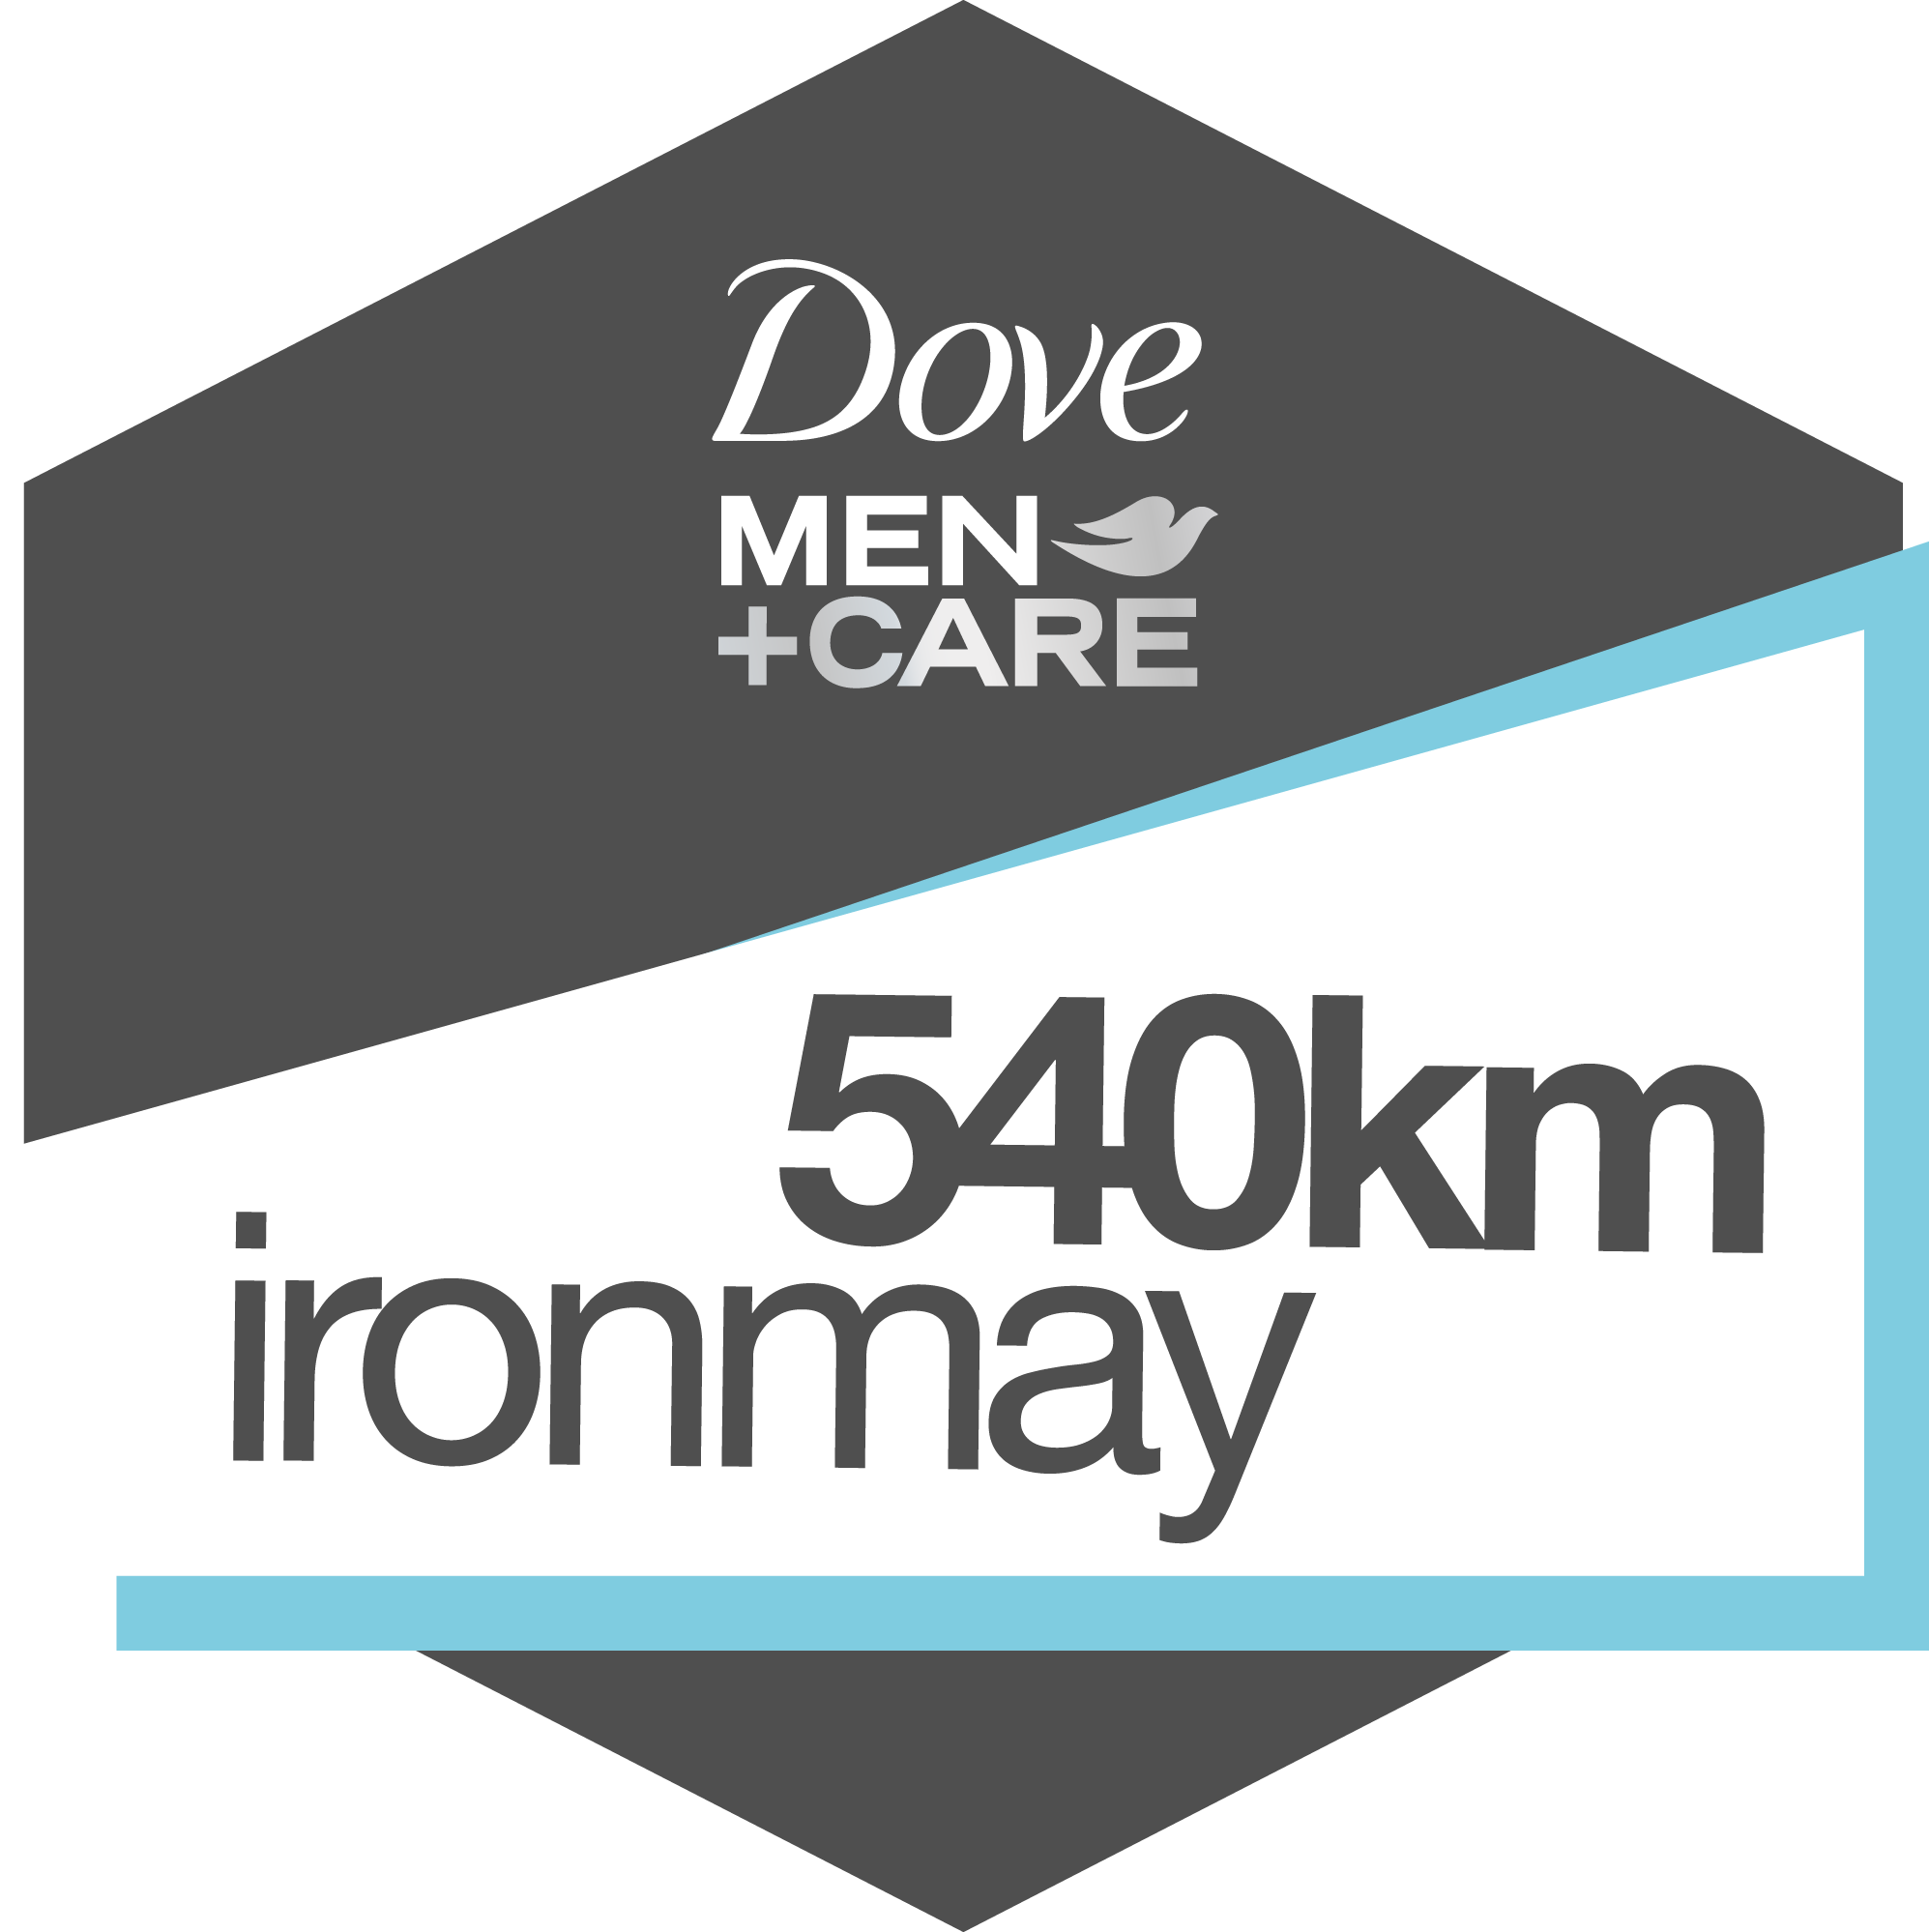 Dove Men+Care IronMay logo